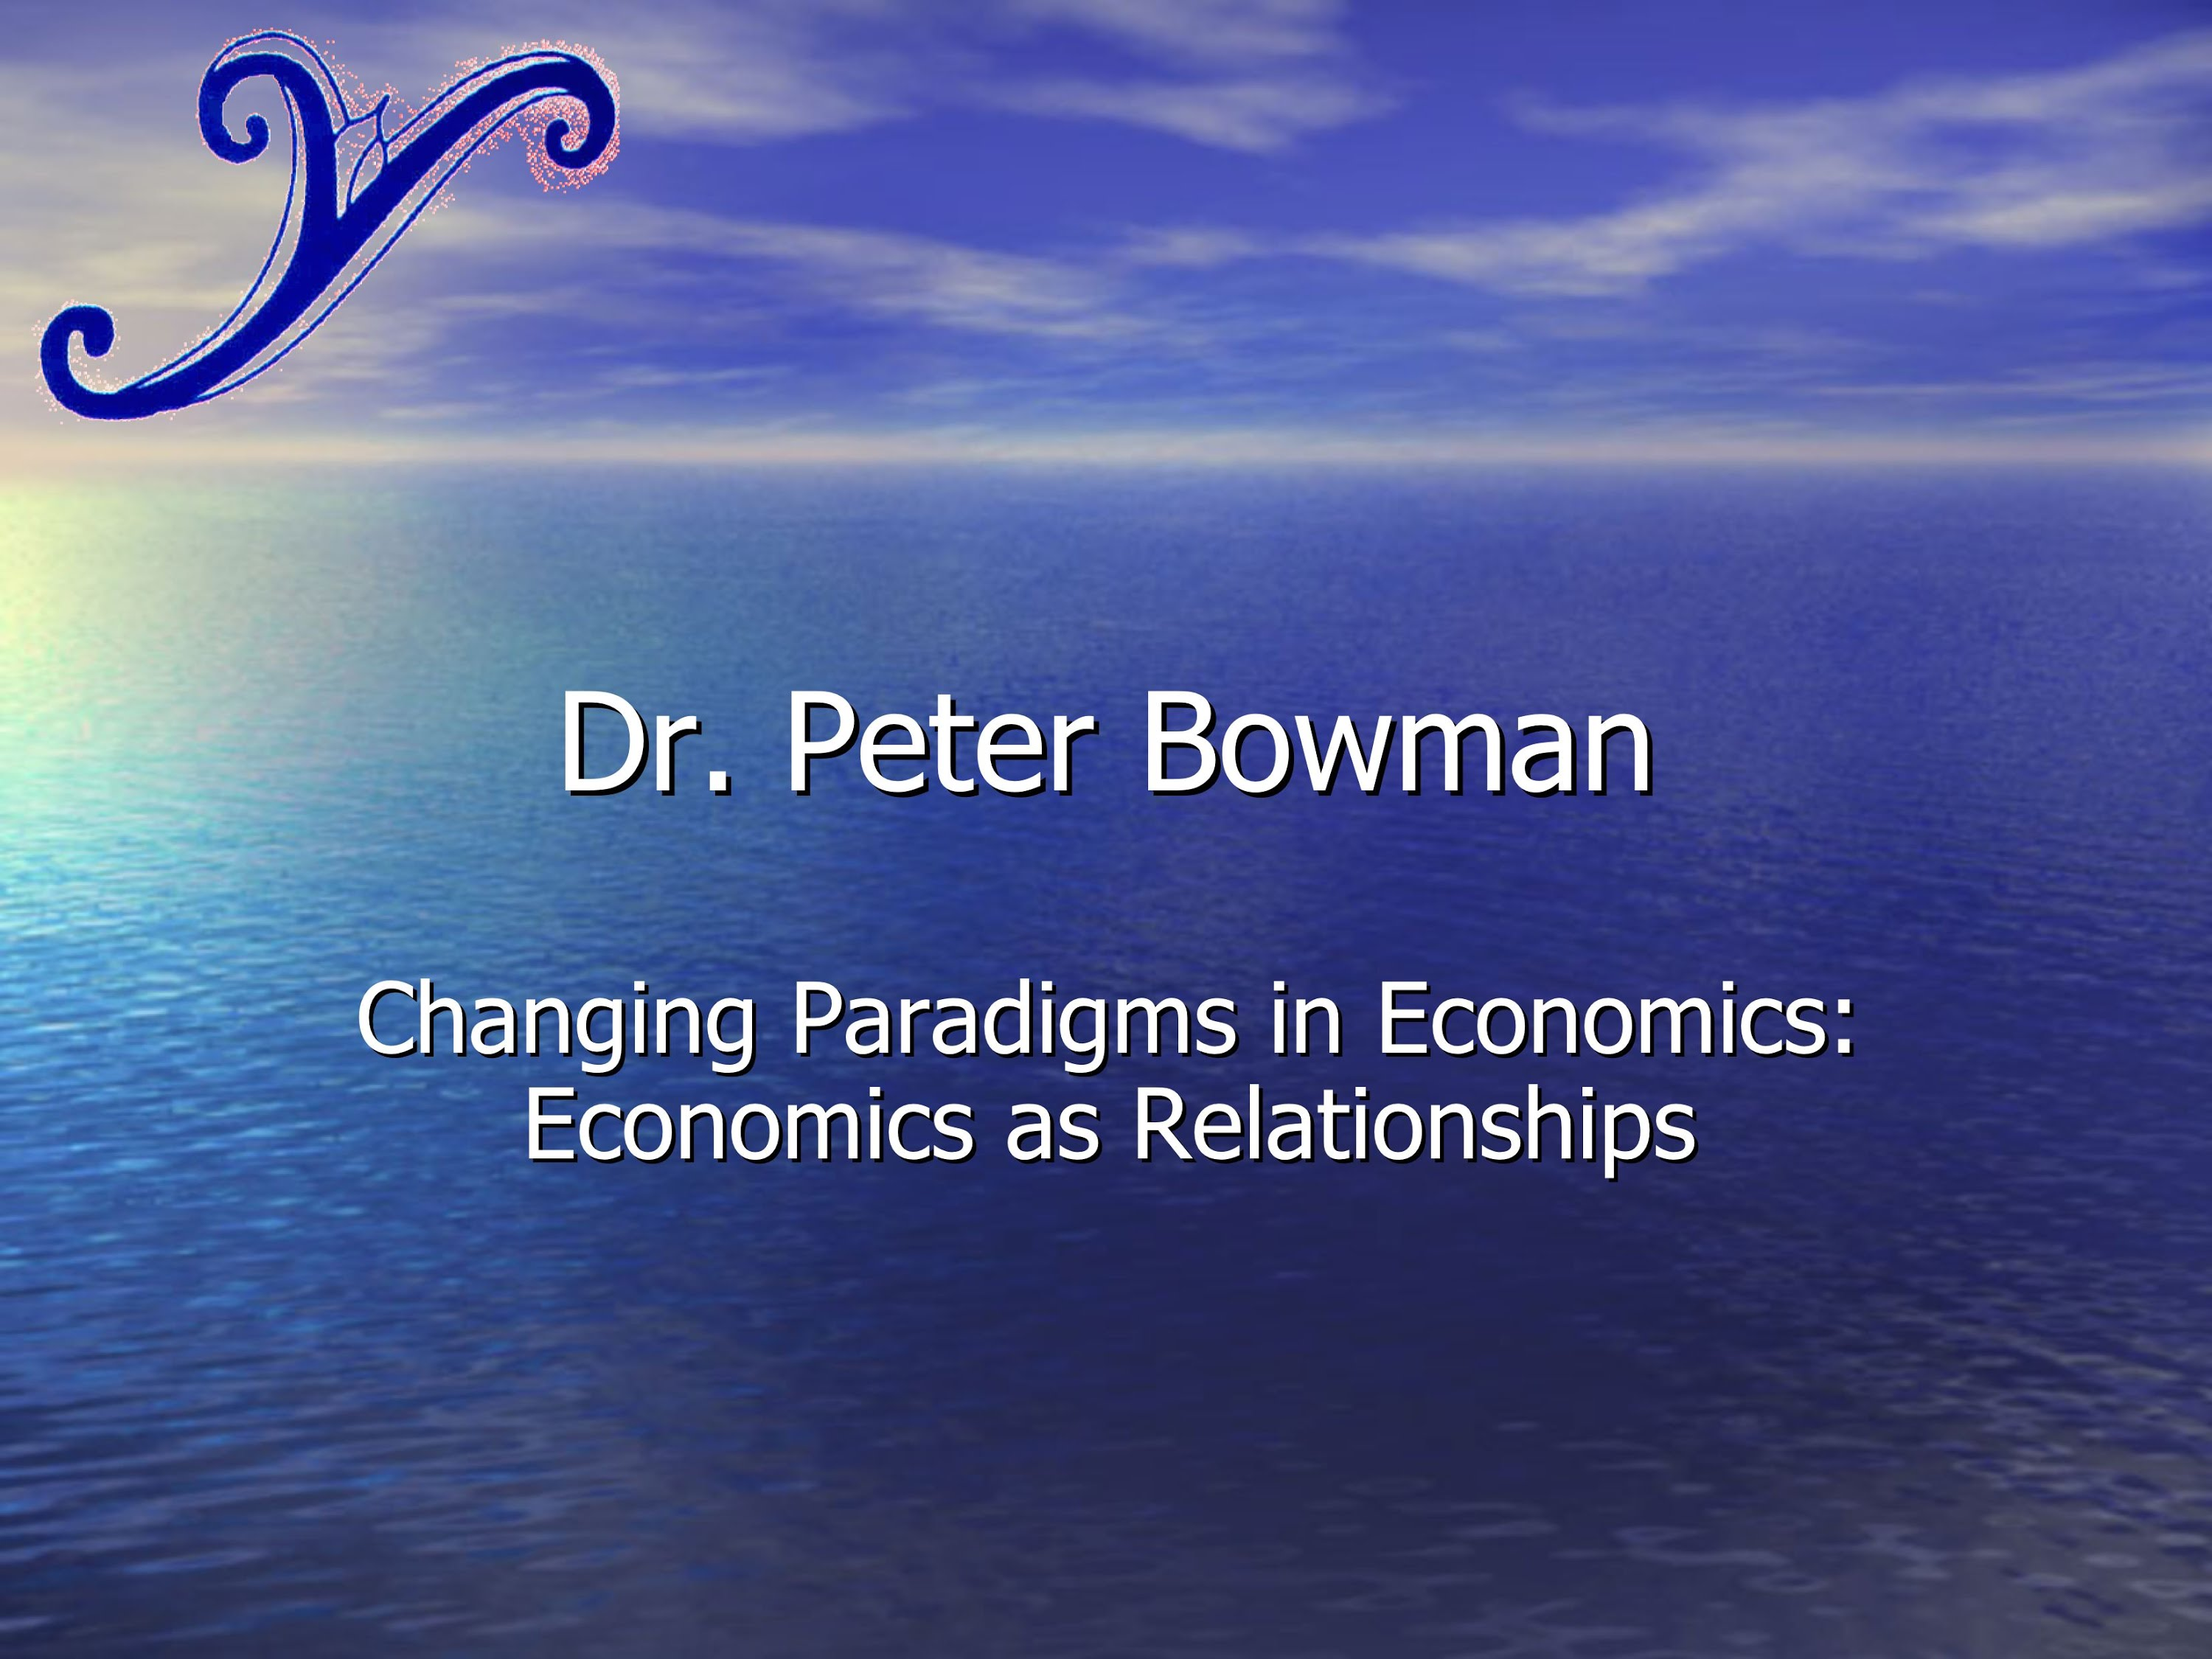 Dr Peter Bowman - Changing Paradigms in Economics